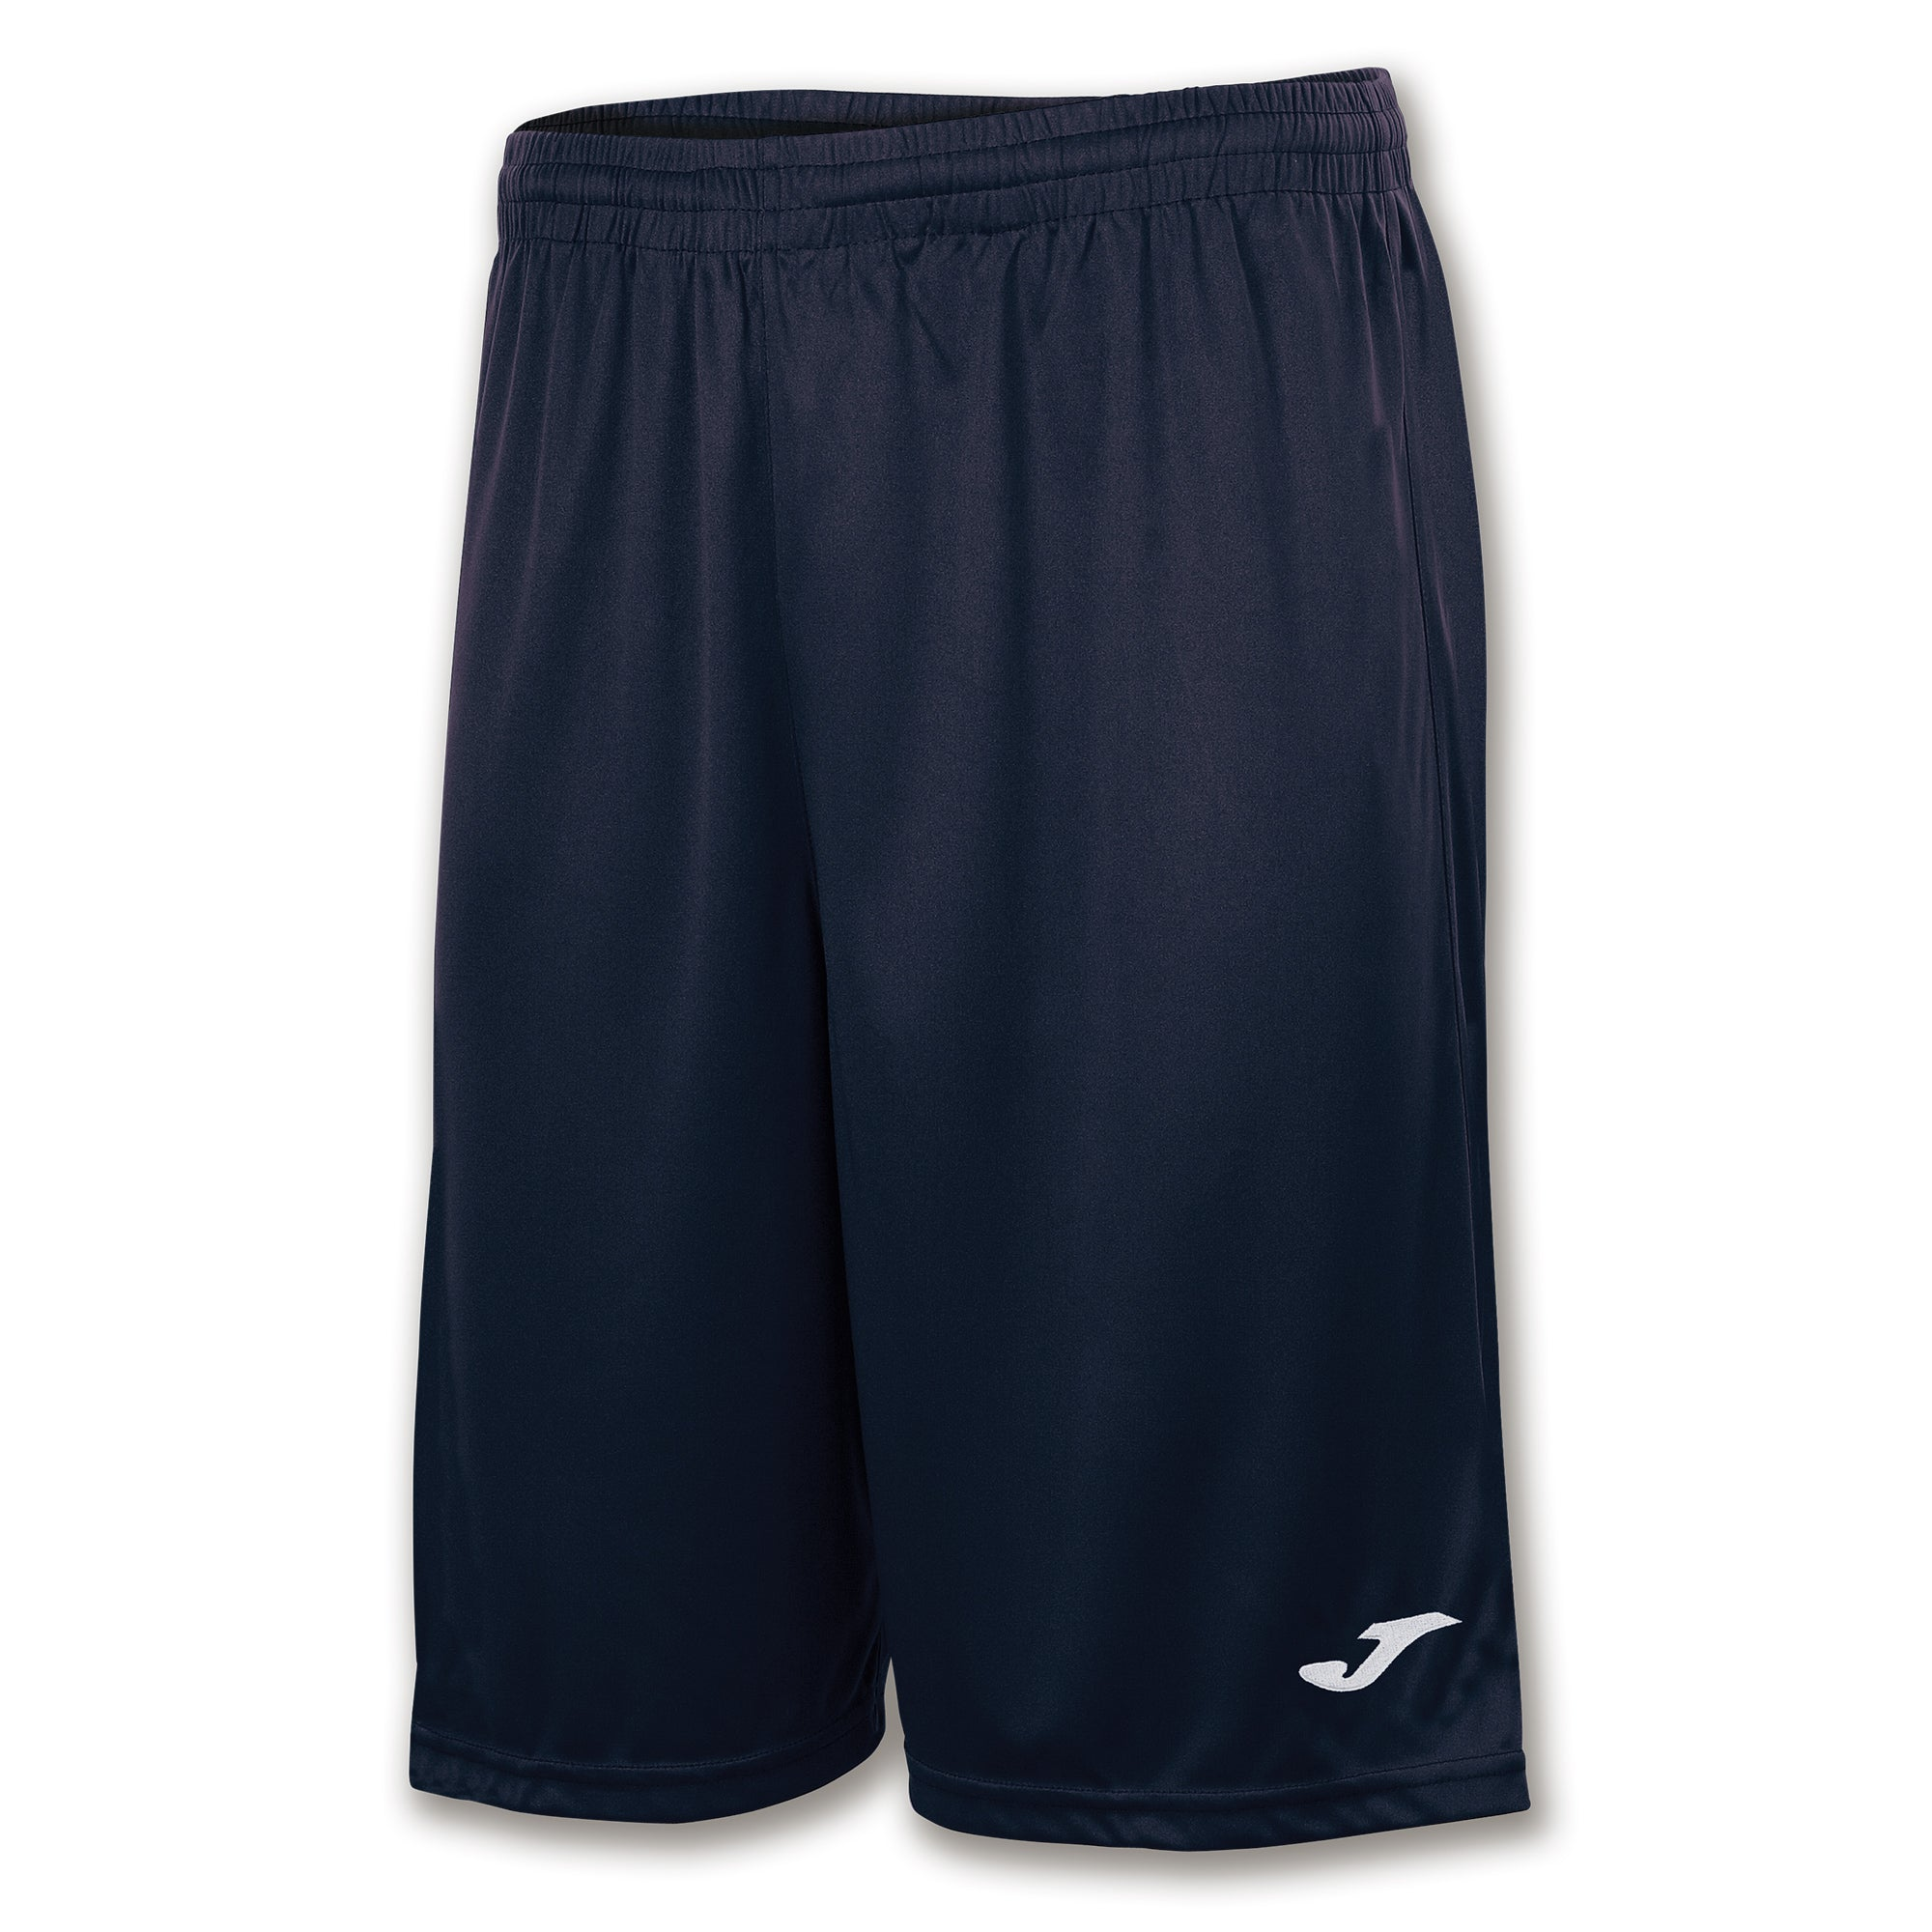 Teamwear - Joma Nobel Long Shorts - Navy Blue - JO-101648-331